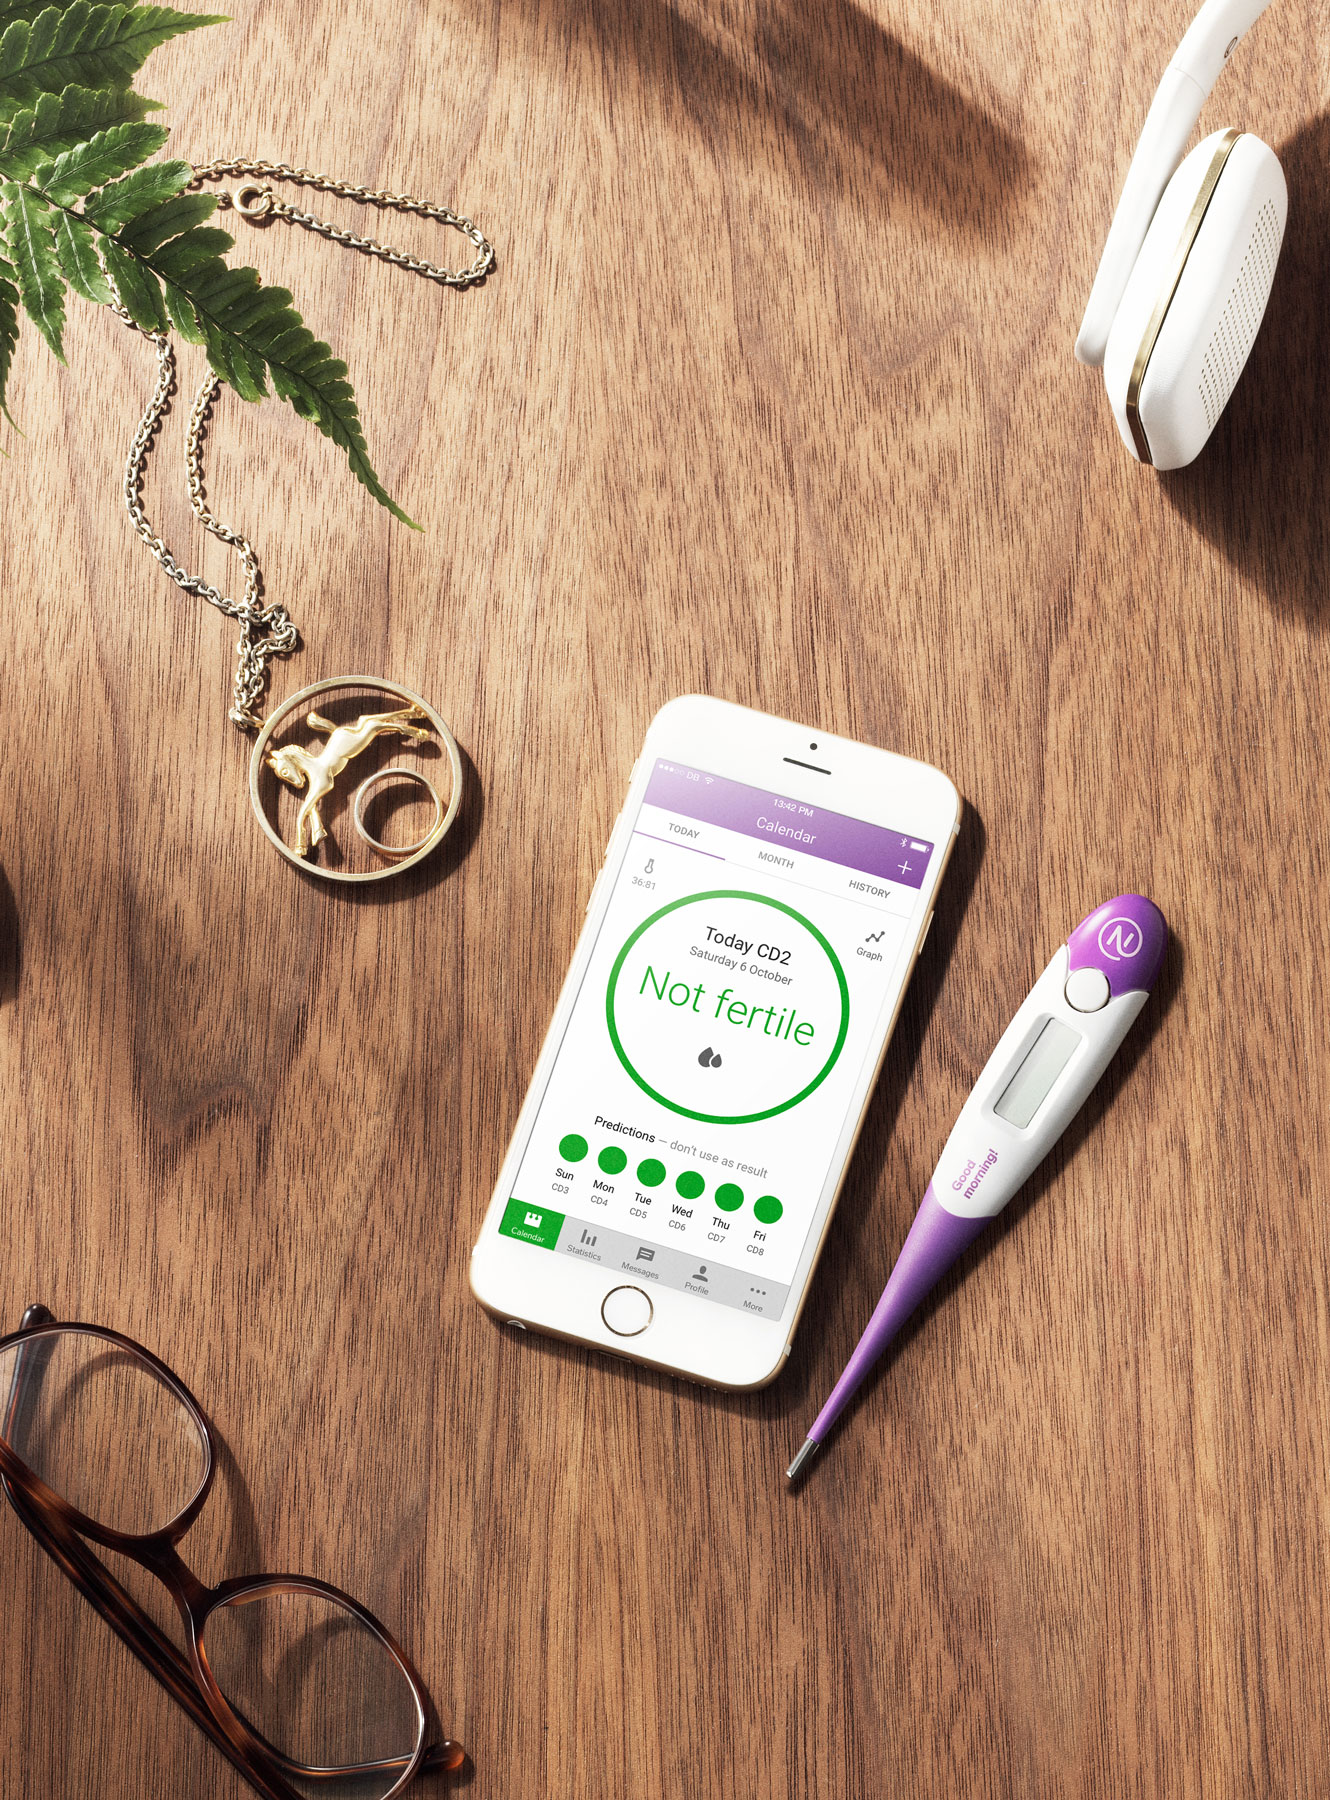 Birth Control Method Contraceptive App- Natural Cycles